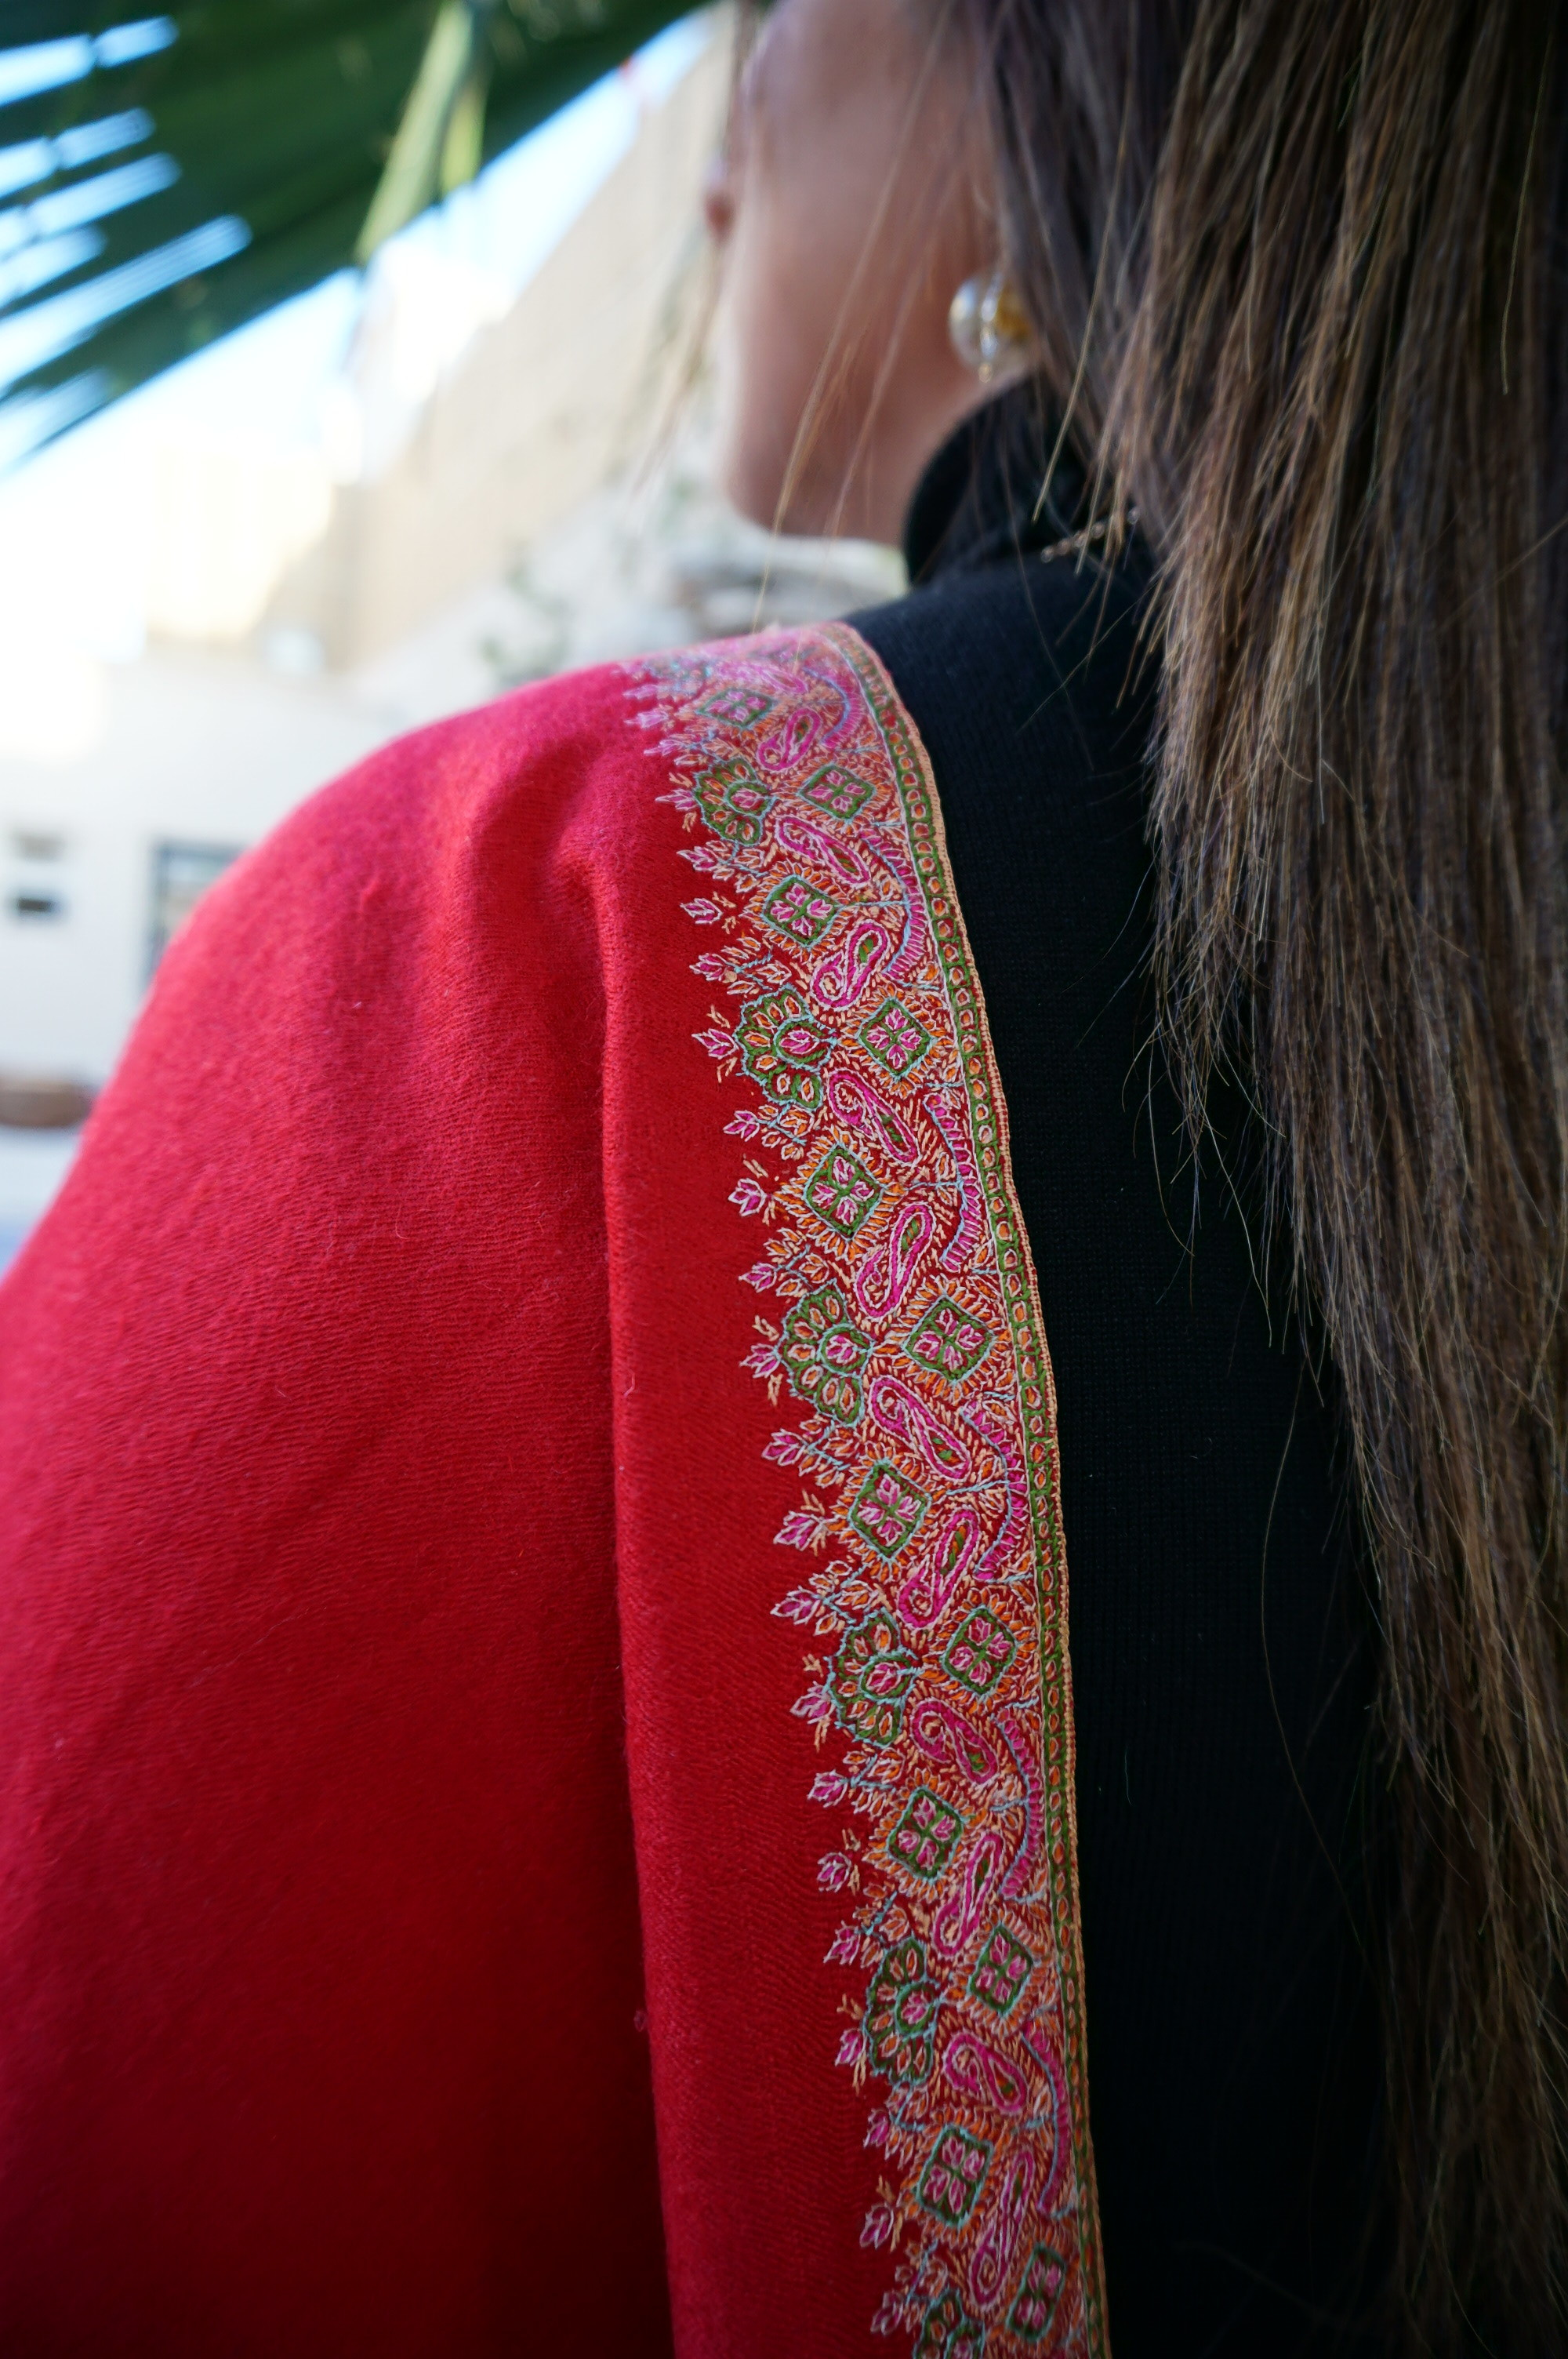 Crimson Red Pashmina with 1 inch of intricate handmade embroidery all along the borders.